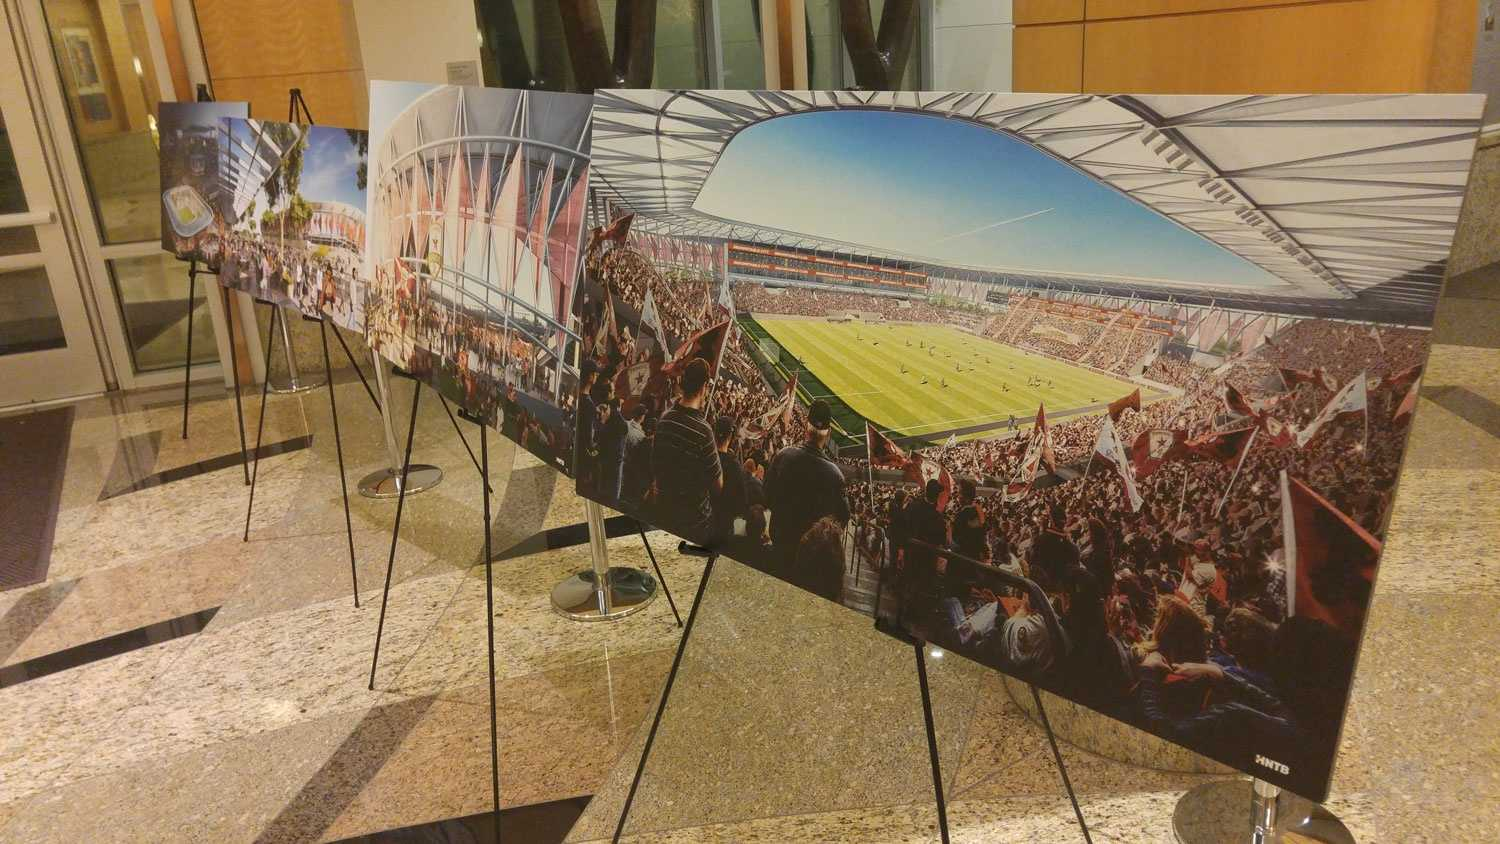 Renderings of a soccer stadium proposed to be built at the downtown Sacramento railyards were displayed on Tuesday, Dec. 1, 2015, at city hall. City council members voted to approve a term sheet for the stadium during its meeting that night.